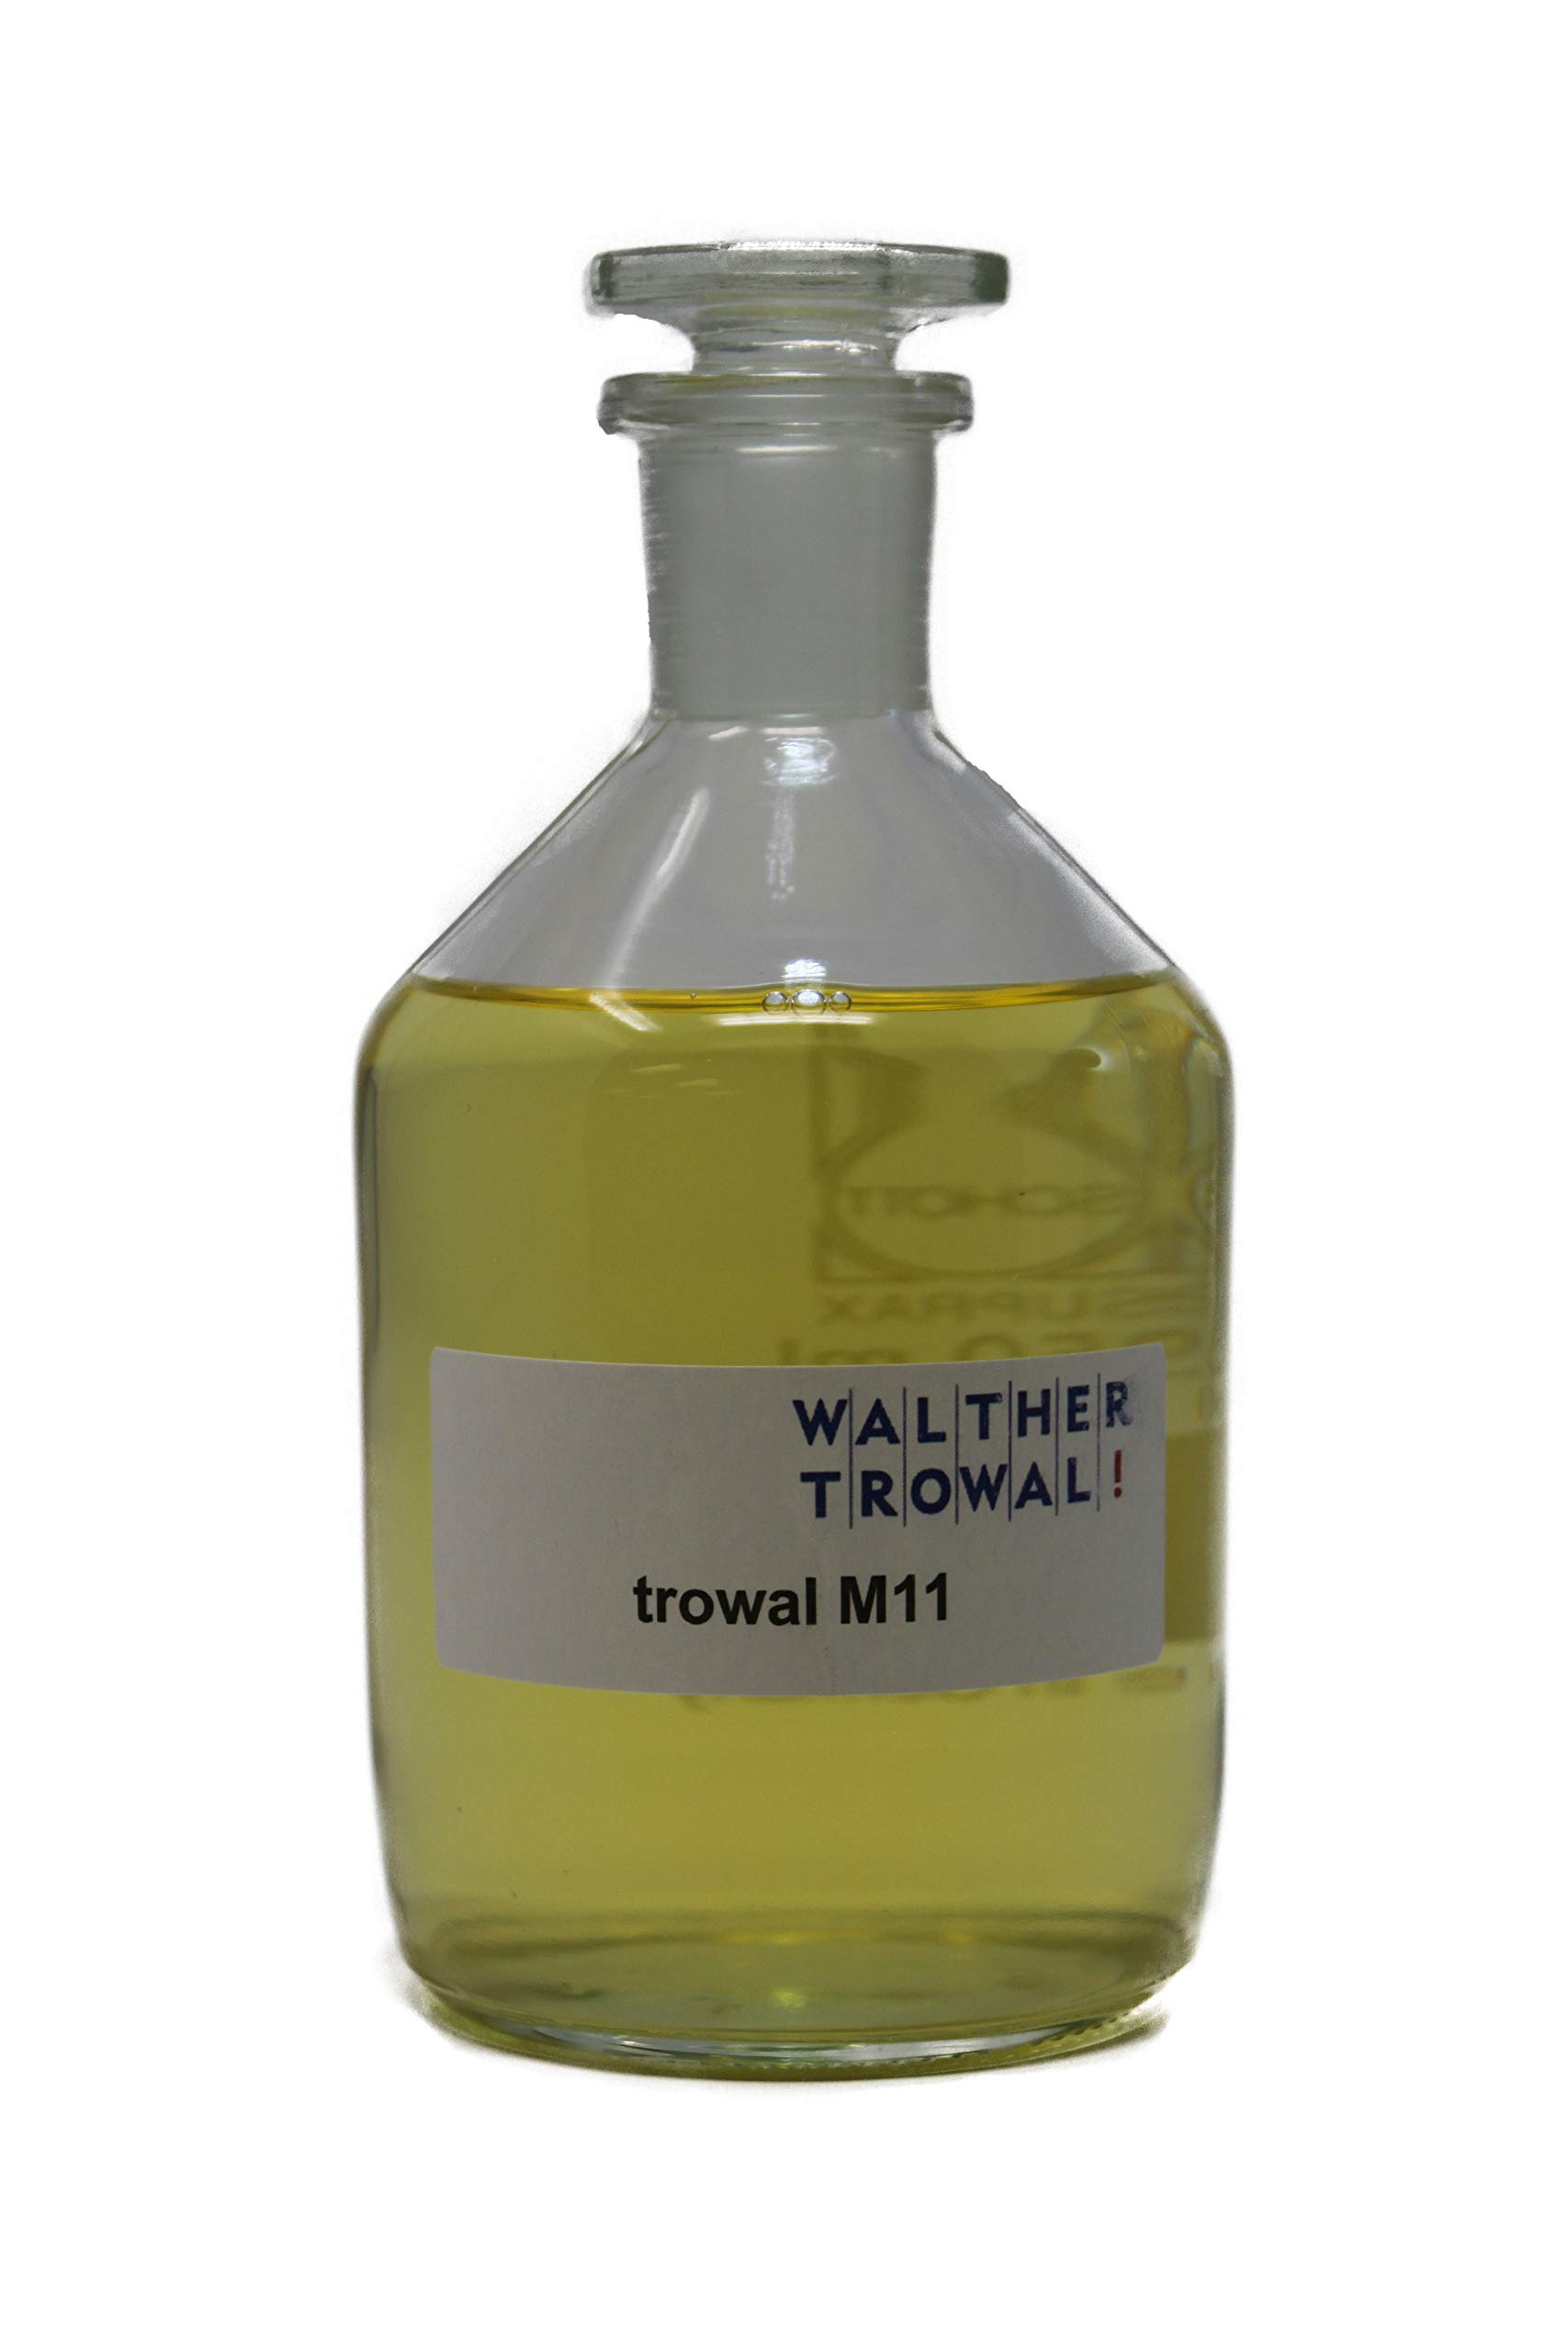 Walther Trowal M 11, Acidic Burnishing Liquid Compound, 25 KG Container